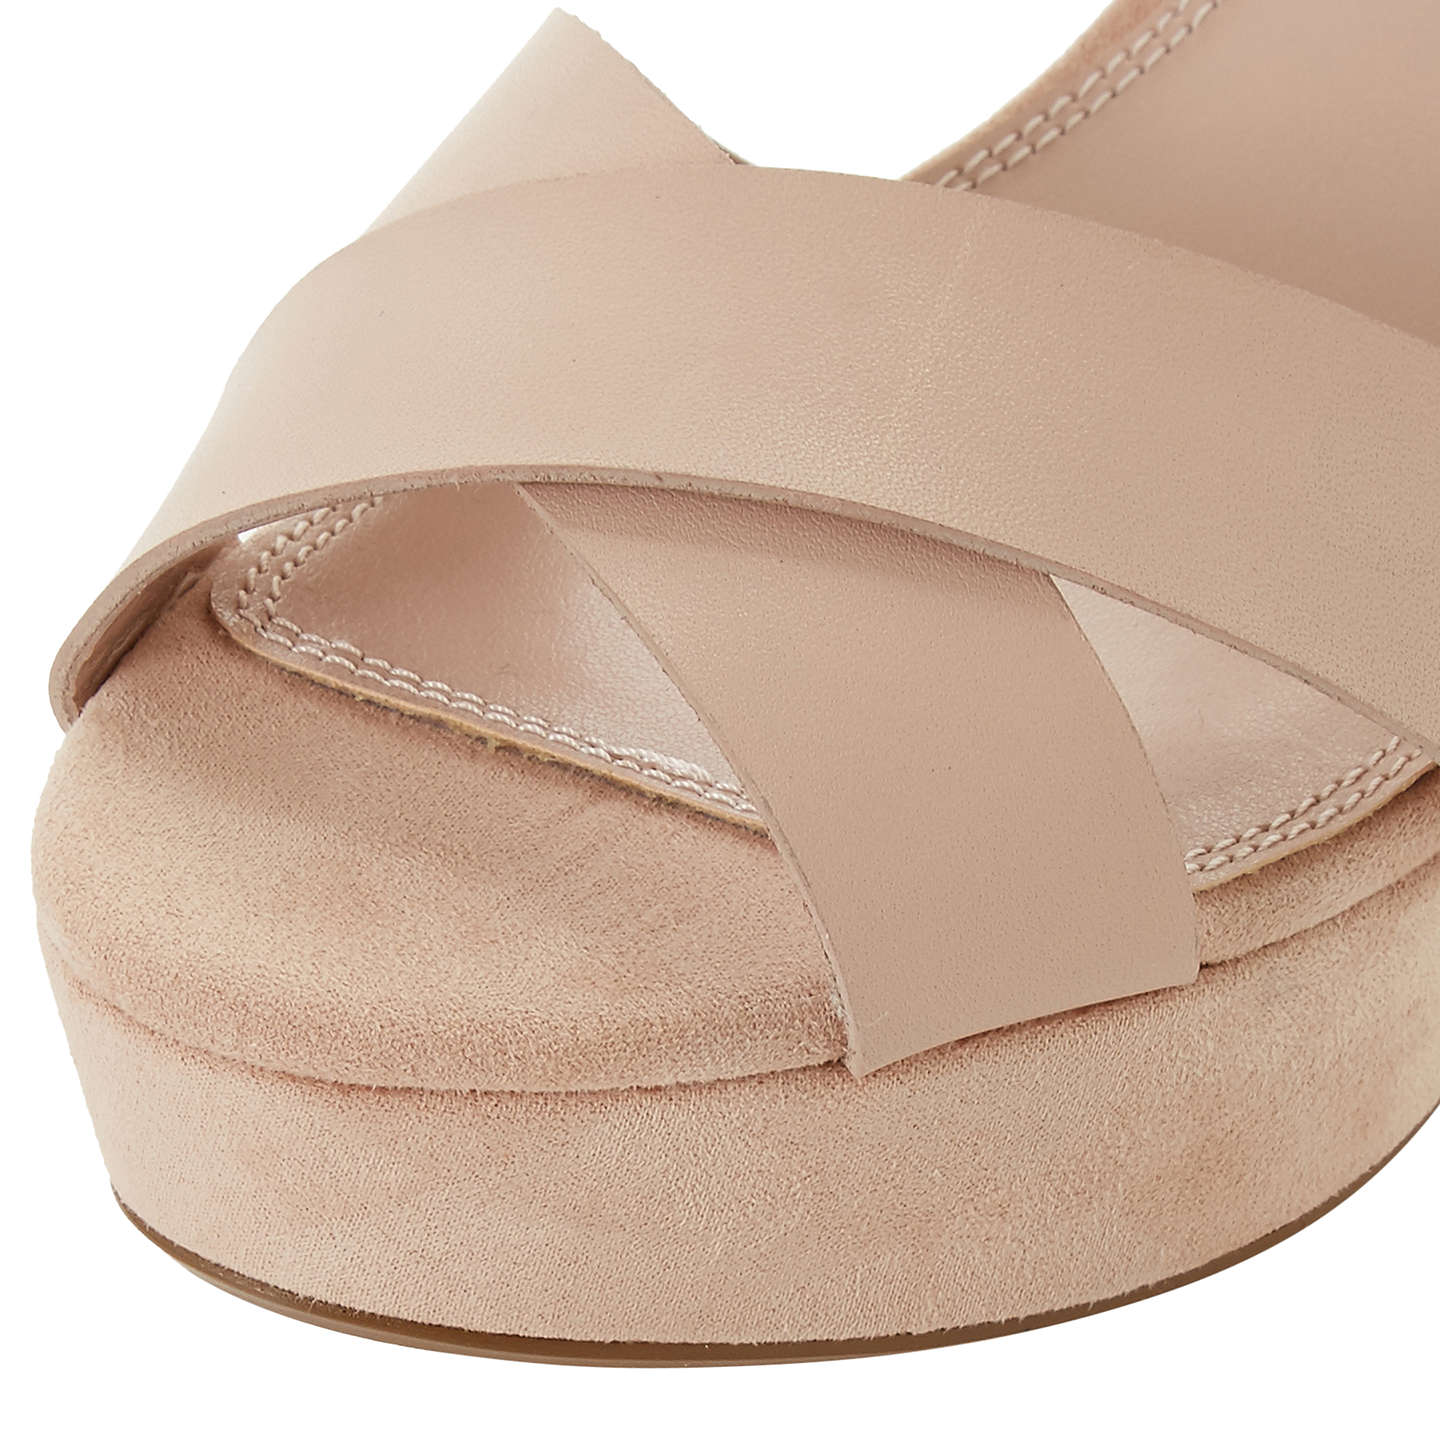 BuyDune Iyla Block Heeled Cross Strap Platform Sandals, Blush Leather, 8 Online at johnlewis.com